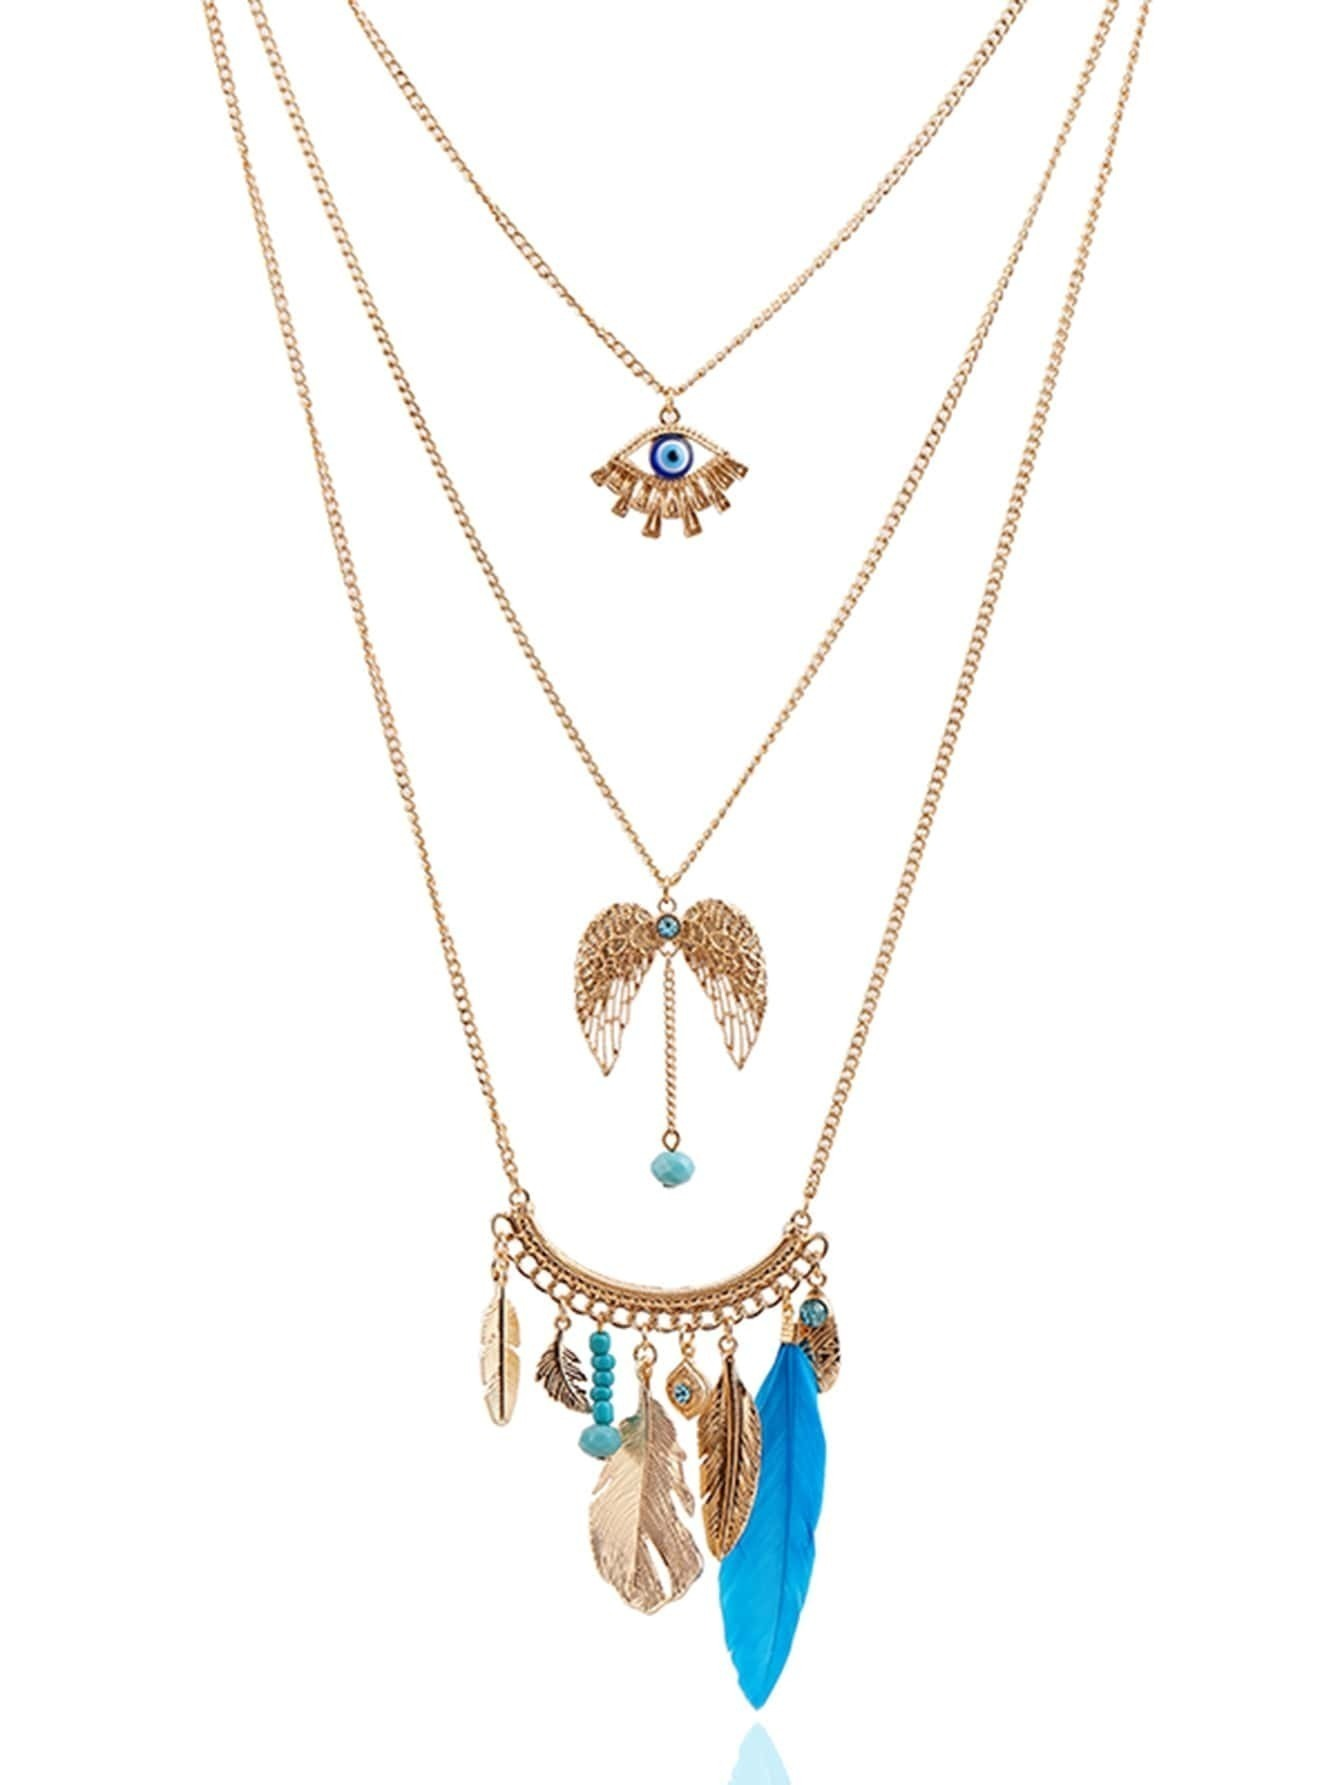 Mixed Pendant Layered Chain Necklace